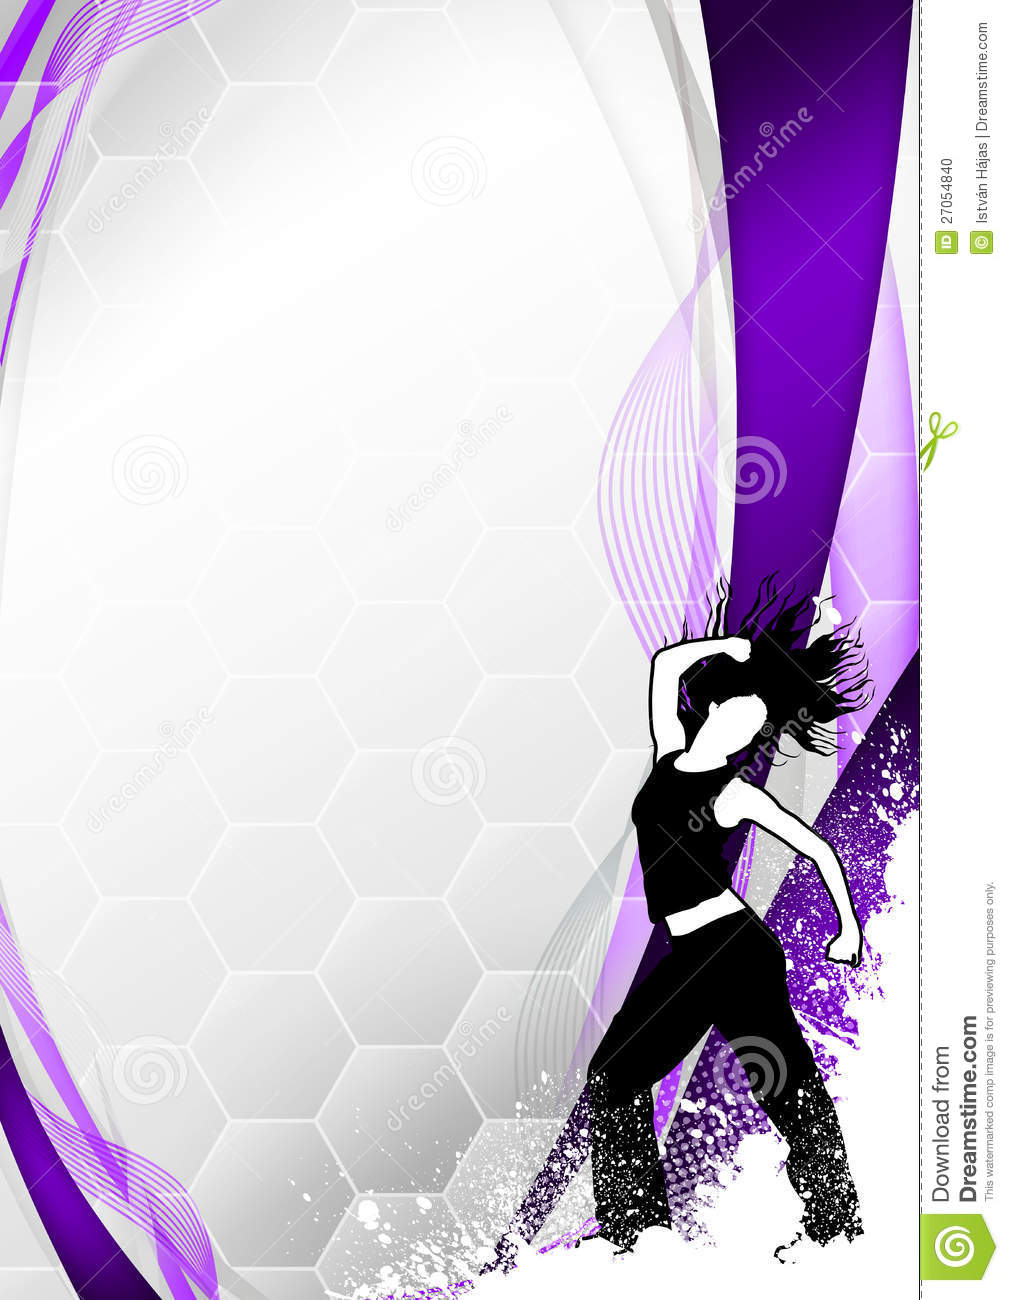 Zumba Fitness Dance Background Stock Photo Image 27054840